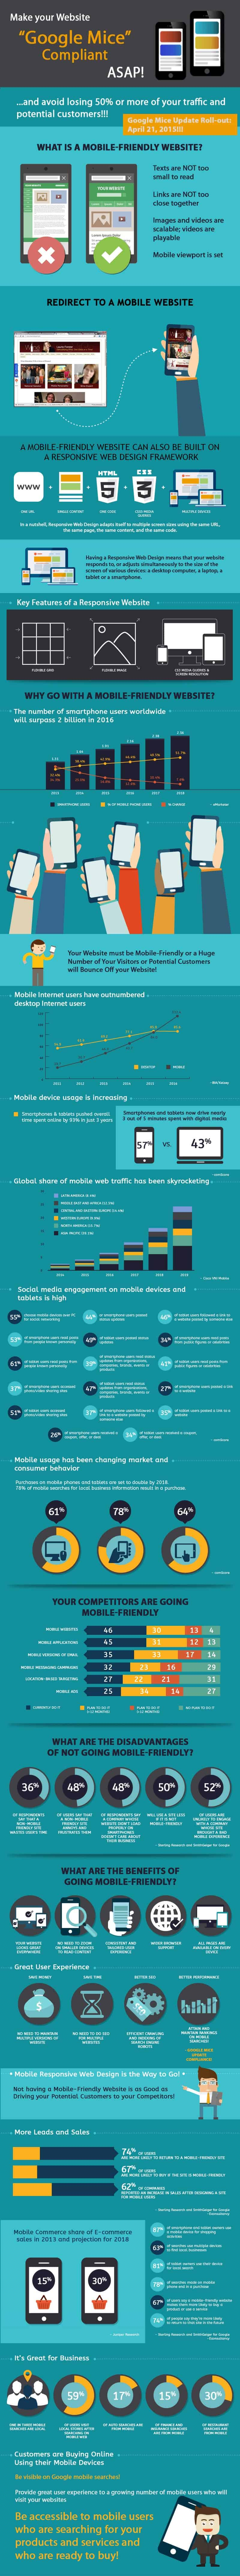 google-mobile-friendly-infographic